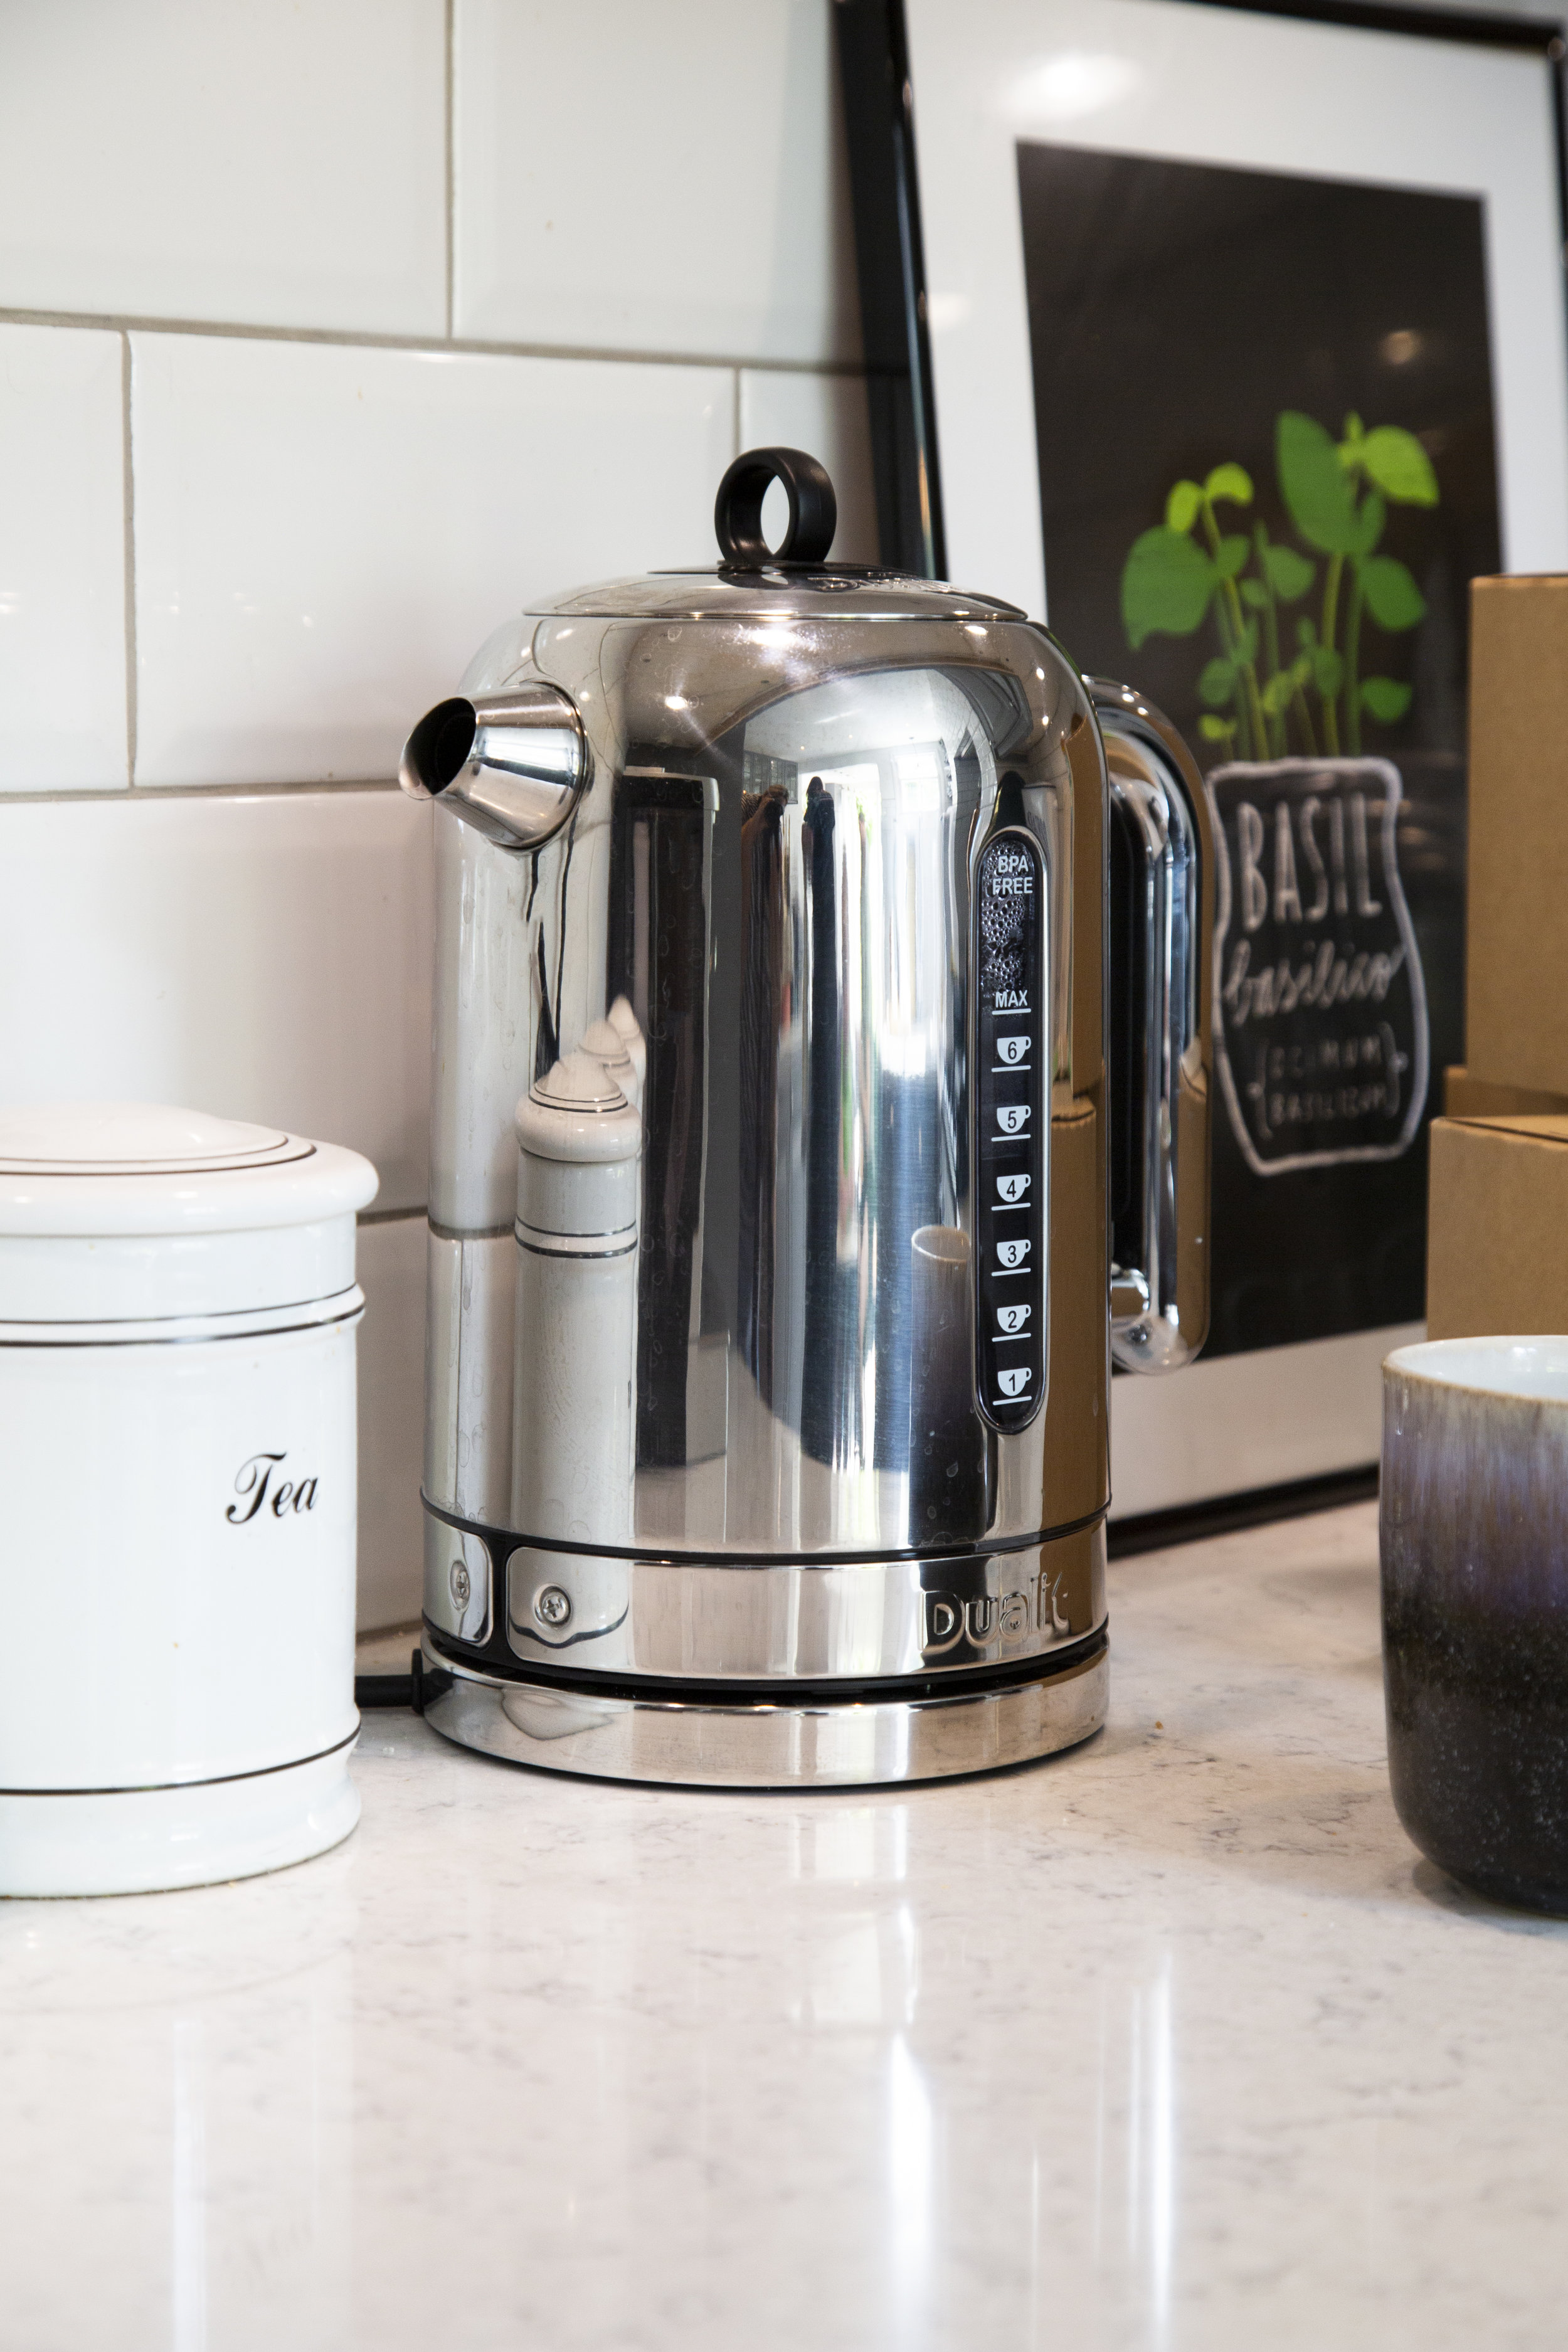 My Dualit   Classic Kettle